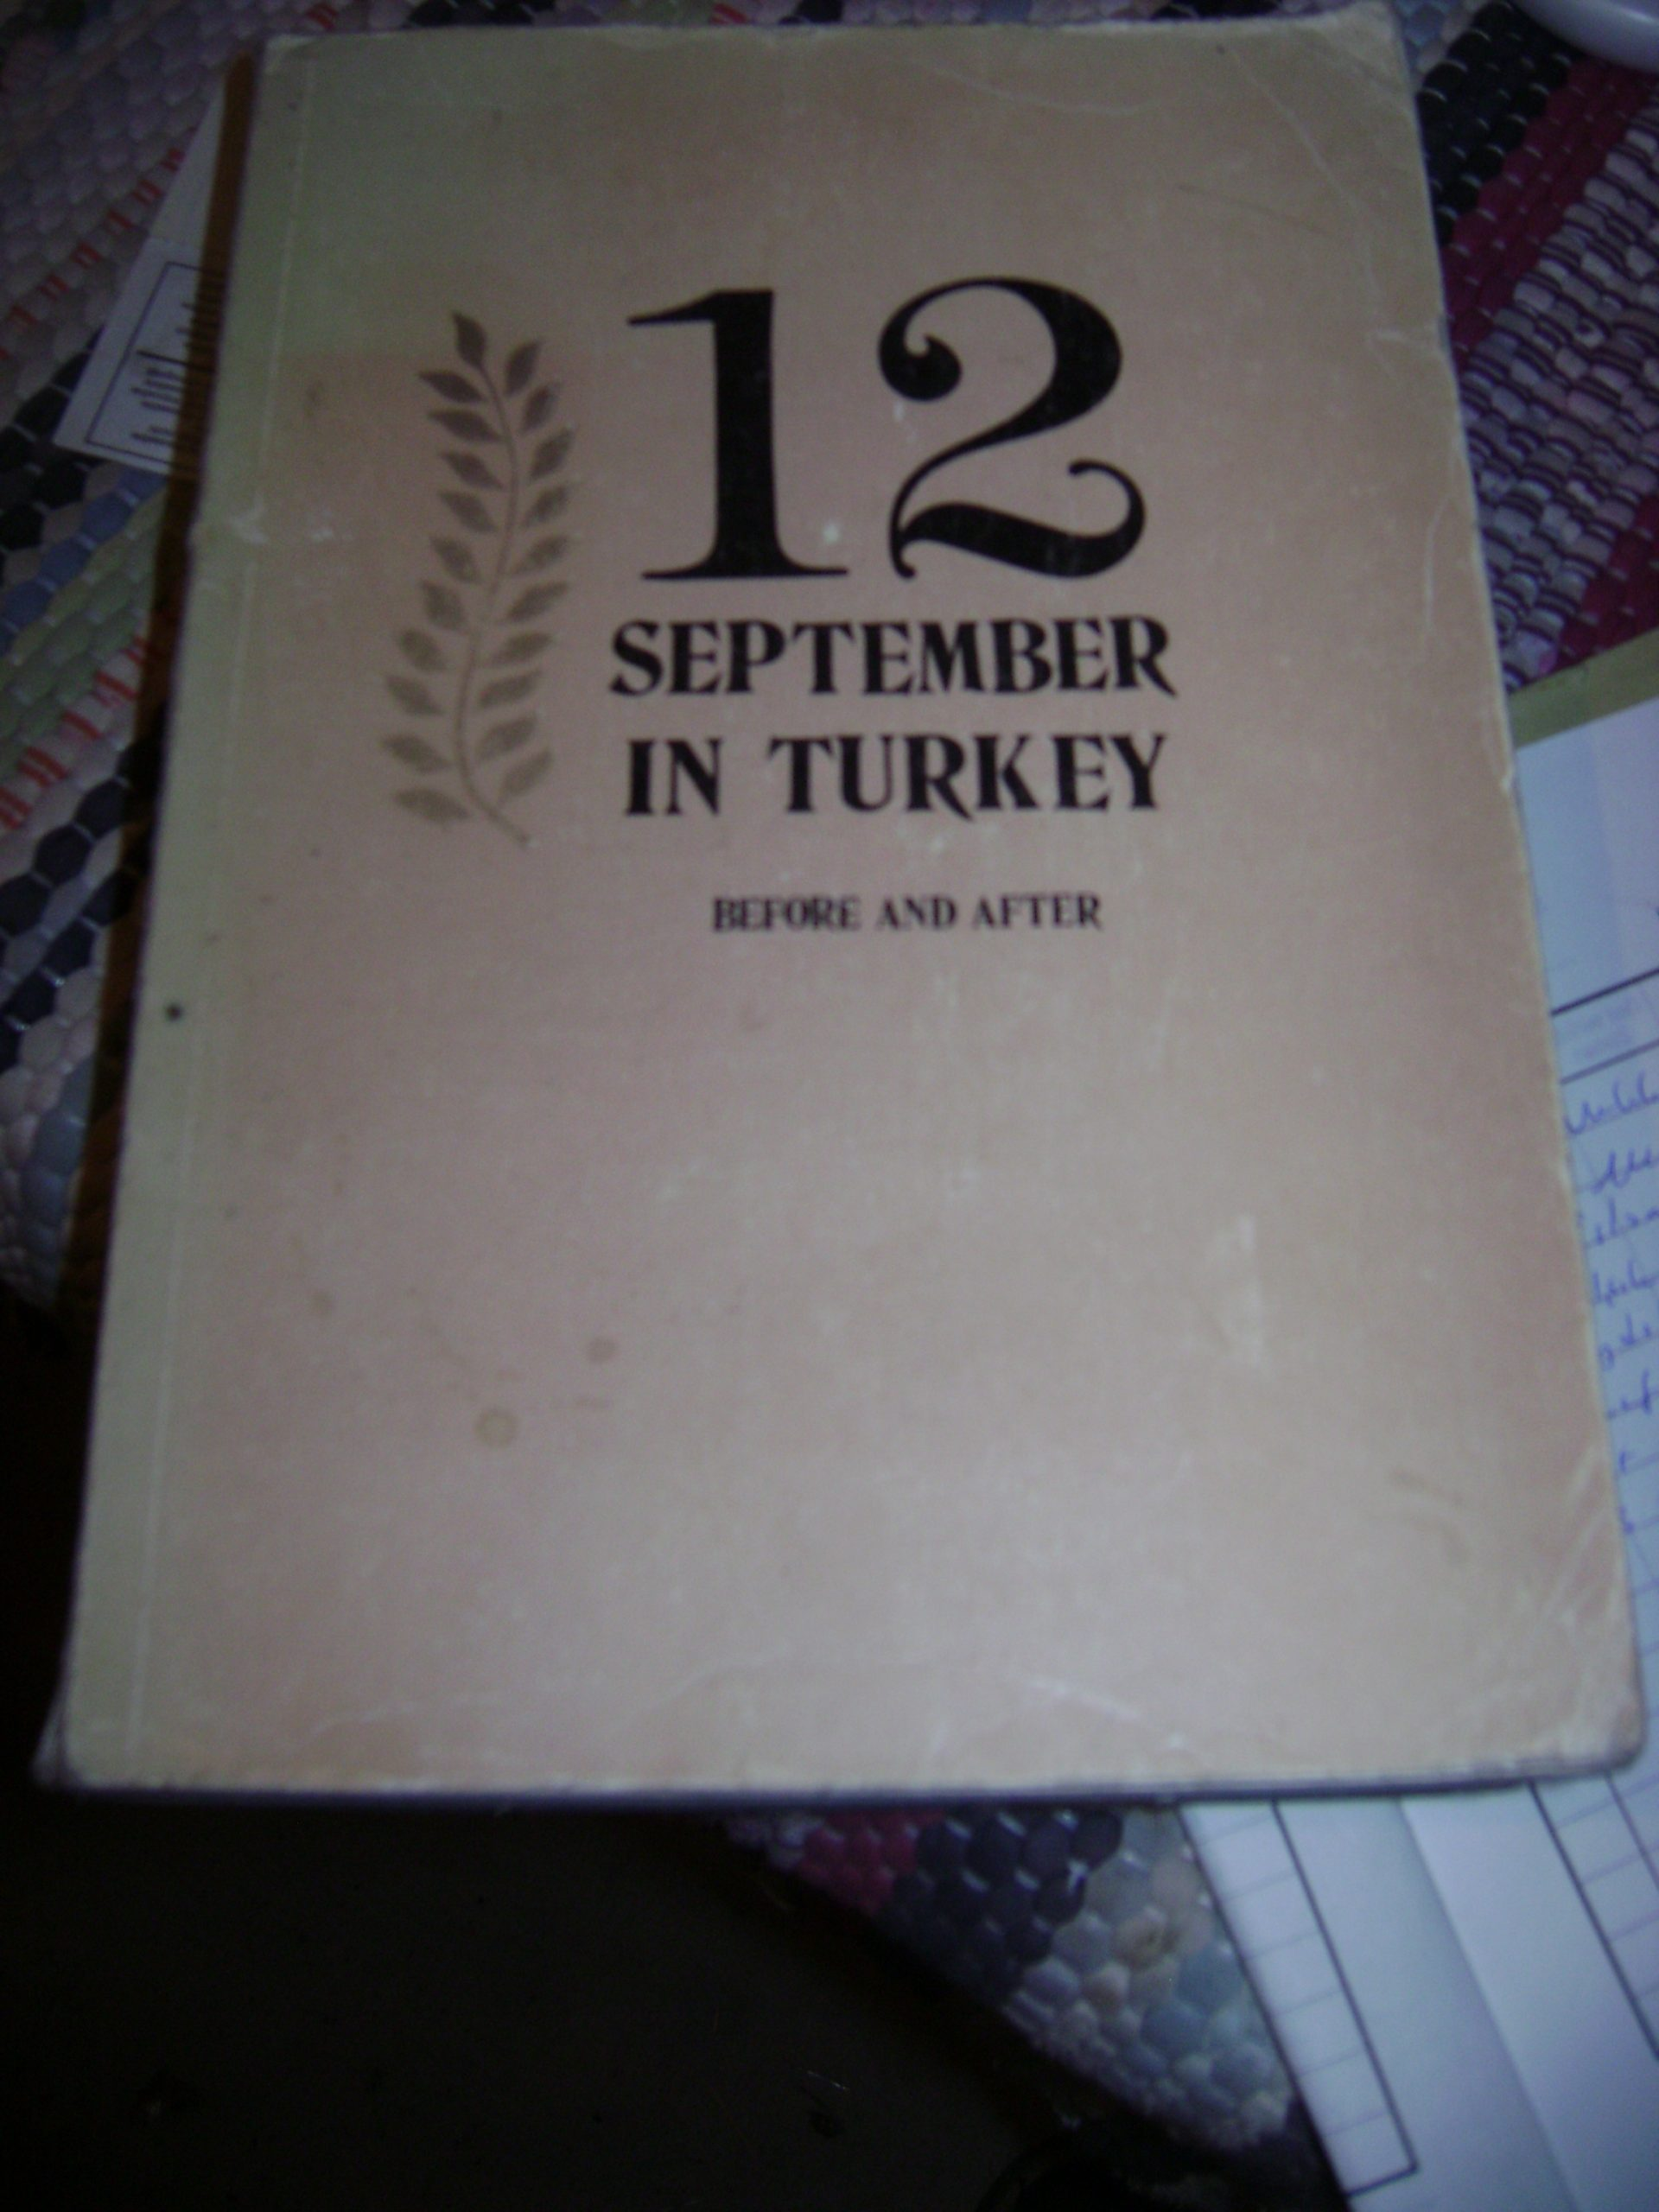 12 september ın turkey-Before and after/25 tl